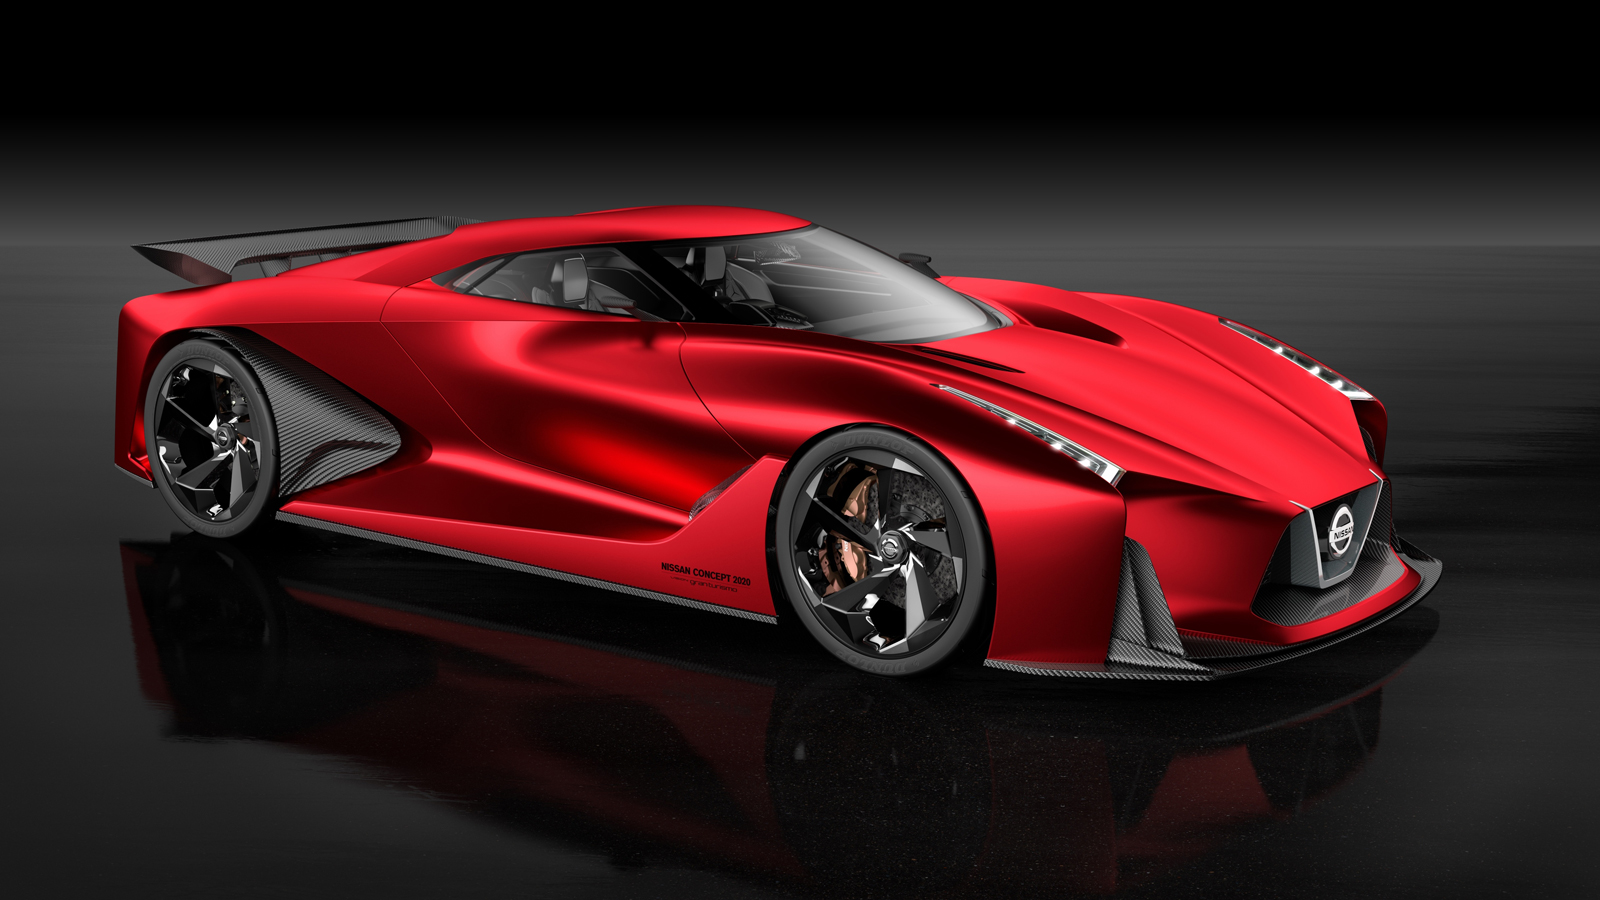 Nissan Concept 2020 Vision Gran Turismo Looks Better in Red